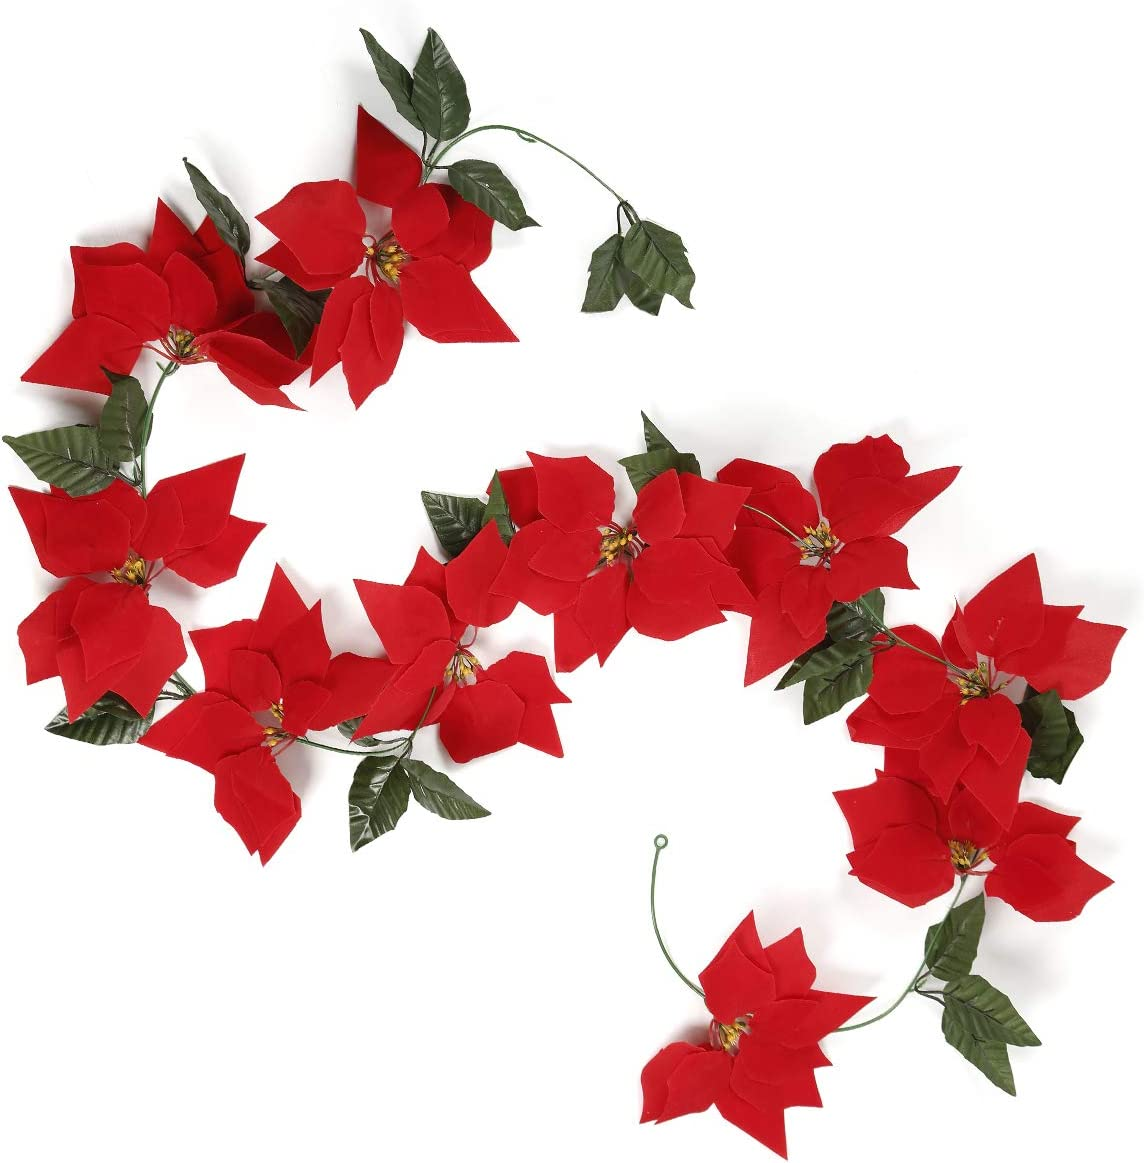 JUISEE Artificial Flowers Christmas Garlands Poinsettia Garland 6.6ft Garland Christmas Rattan Decoration Party Favors Home Décor with Holly Leaves (Red, 6.6ft) (Red, 6.6ft)